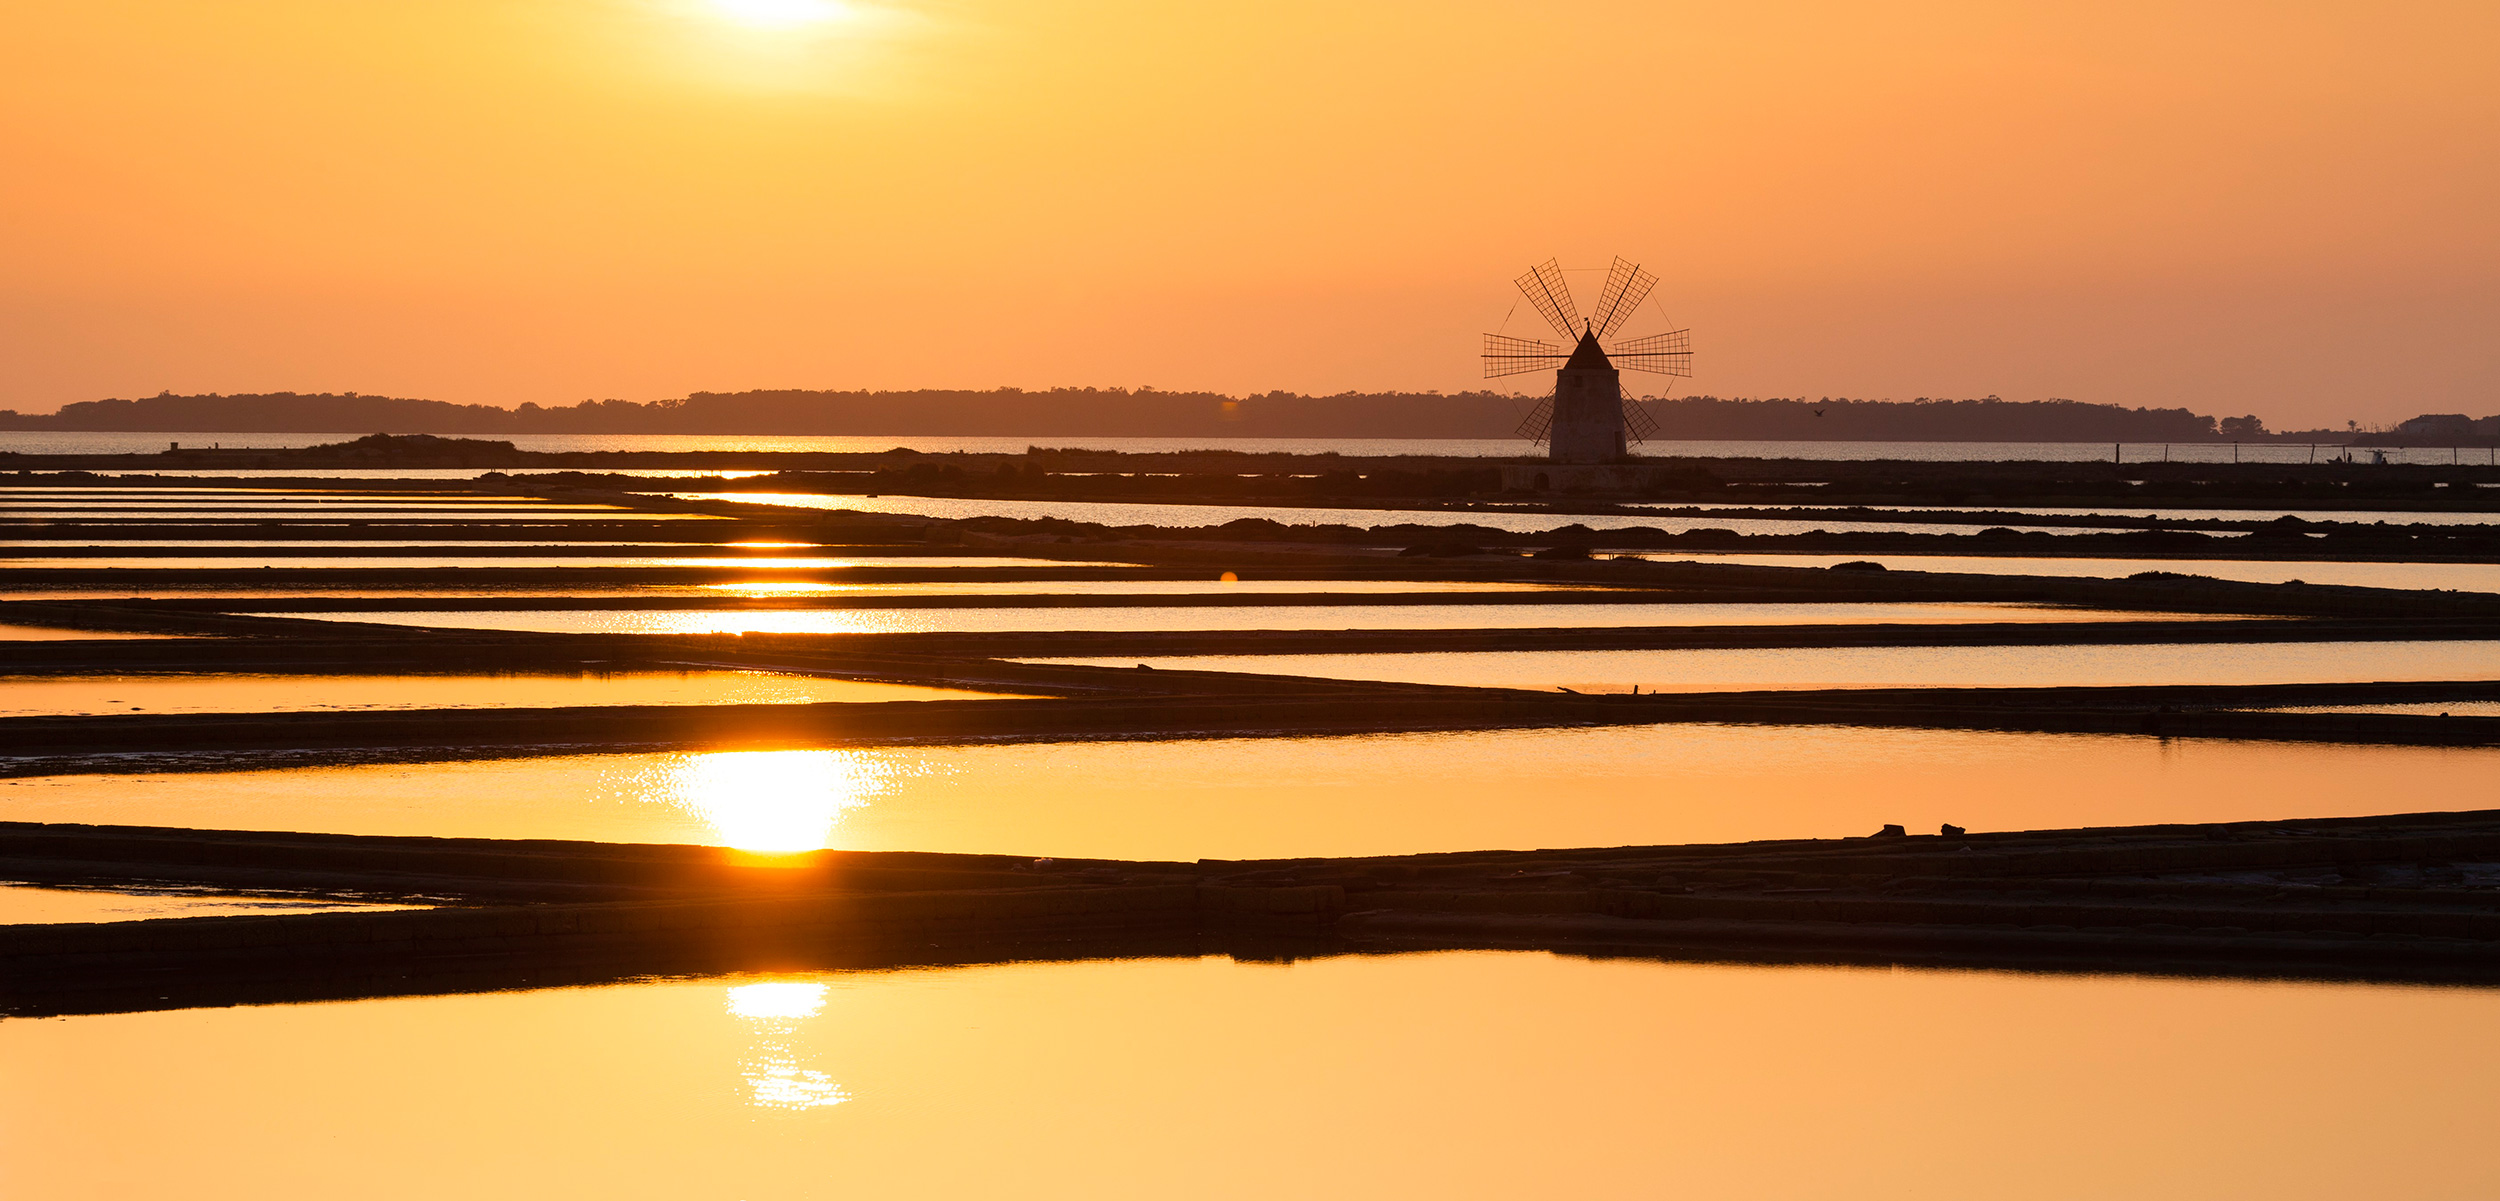 Sunset over the salt flats in Trapani, Sicily. Photo by Frank Lukasseck/Corbis